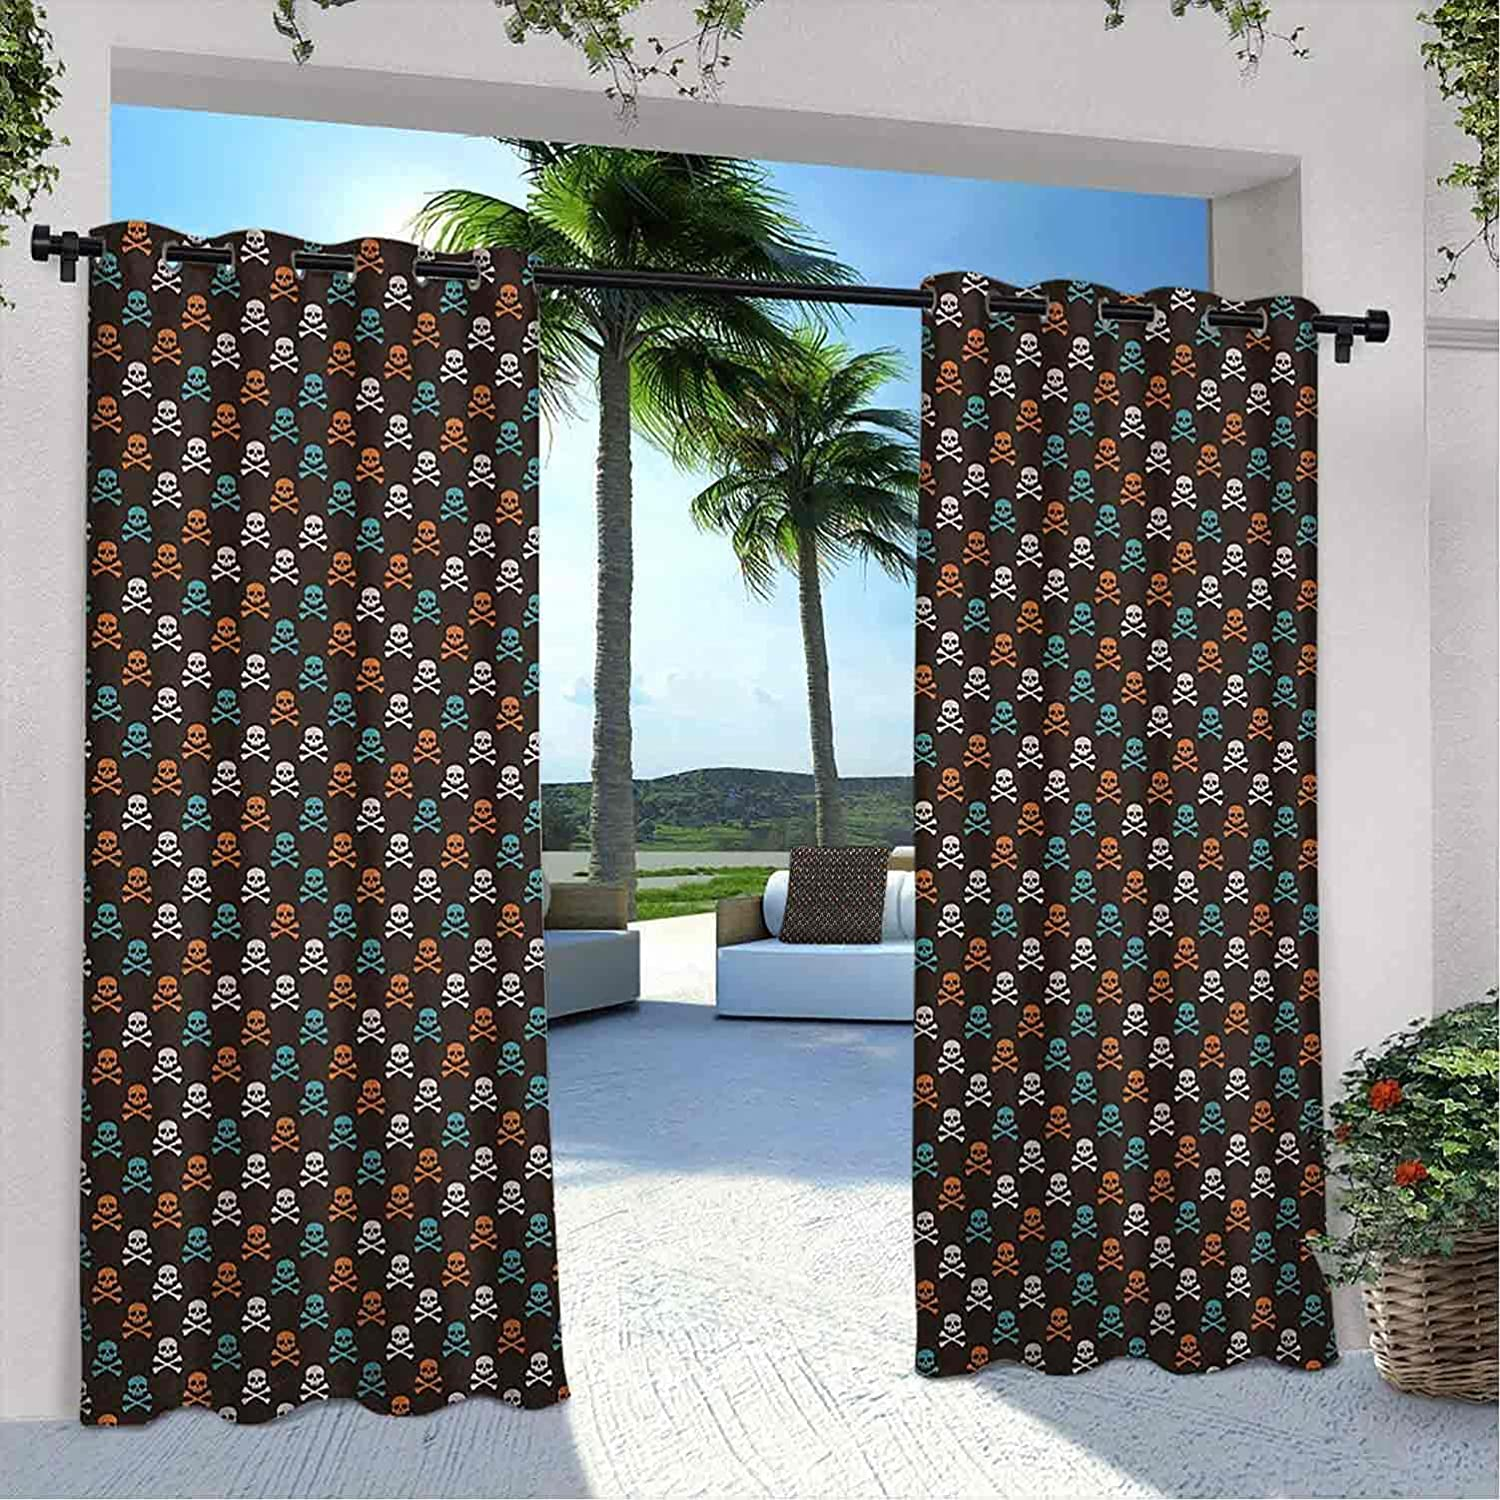 Courtyard Outdoor Pirates Max 51% OFF Curtain Classic Graphic Colored Different Sku